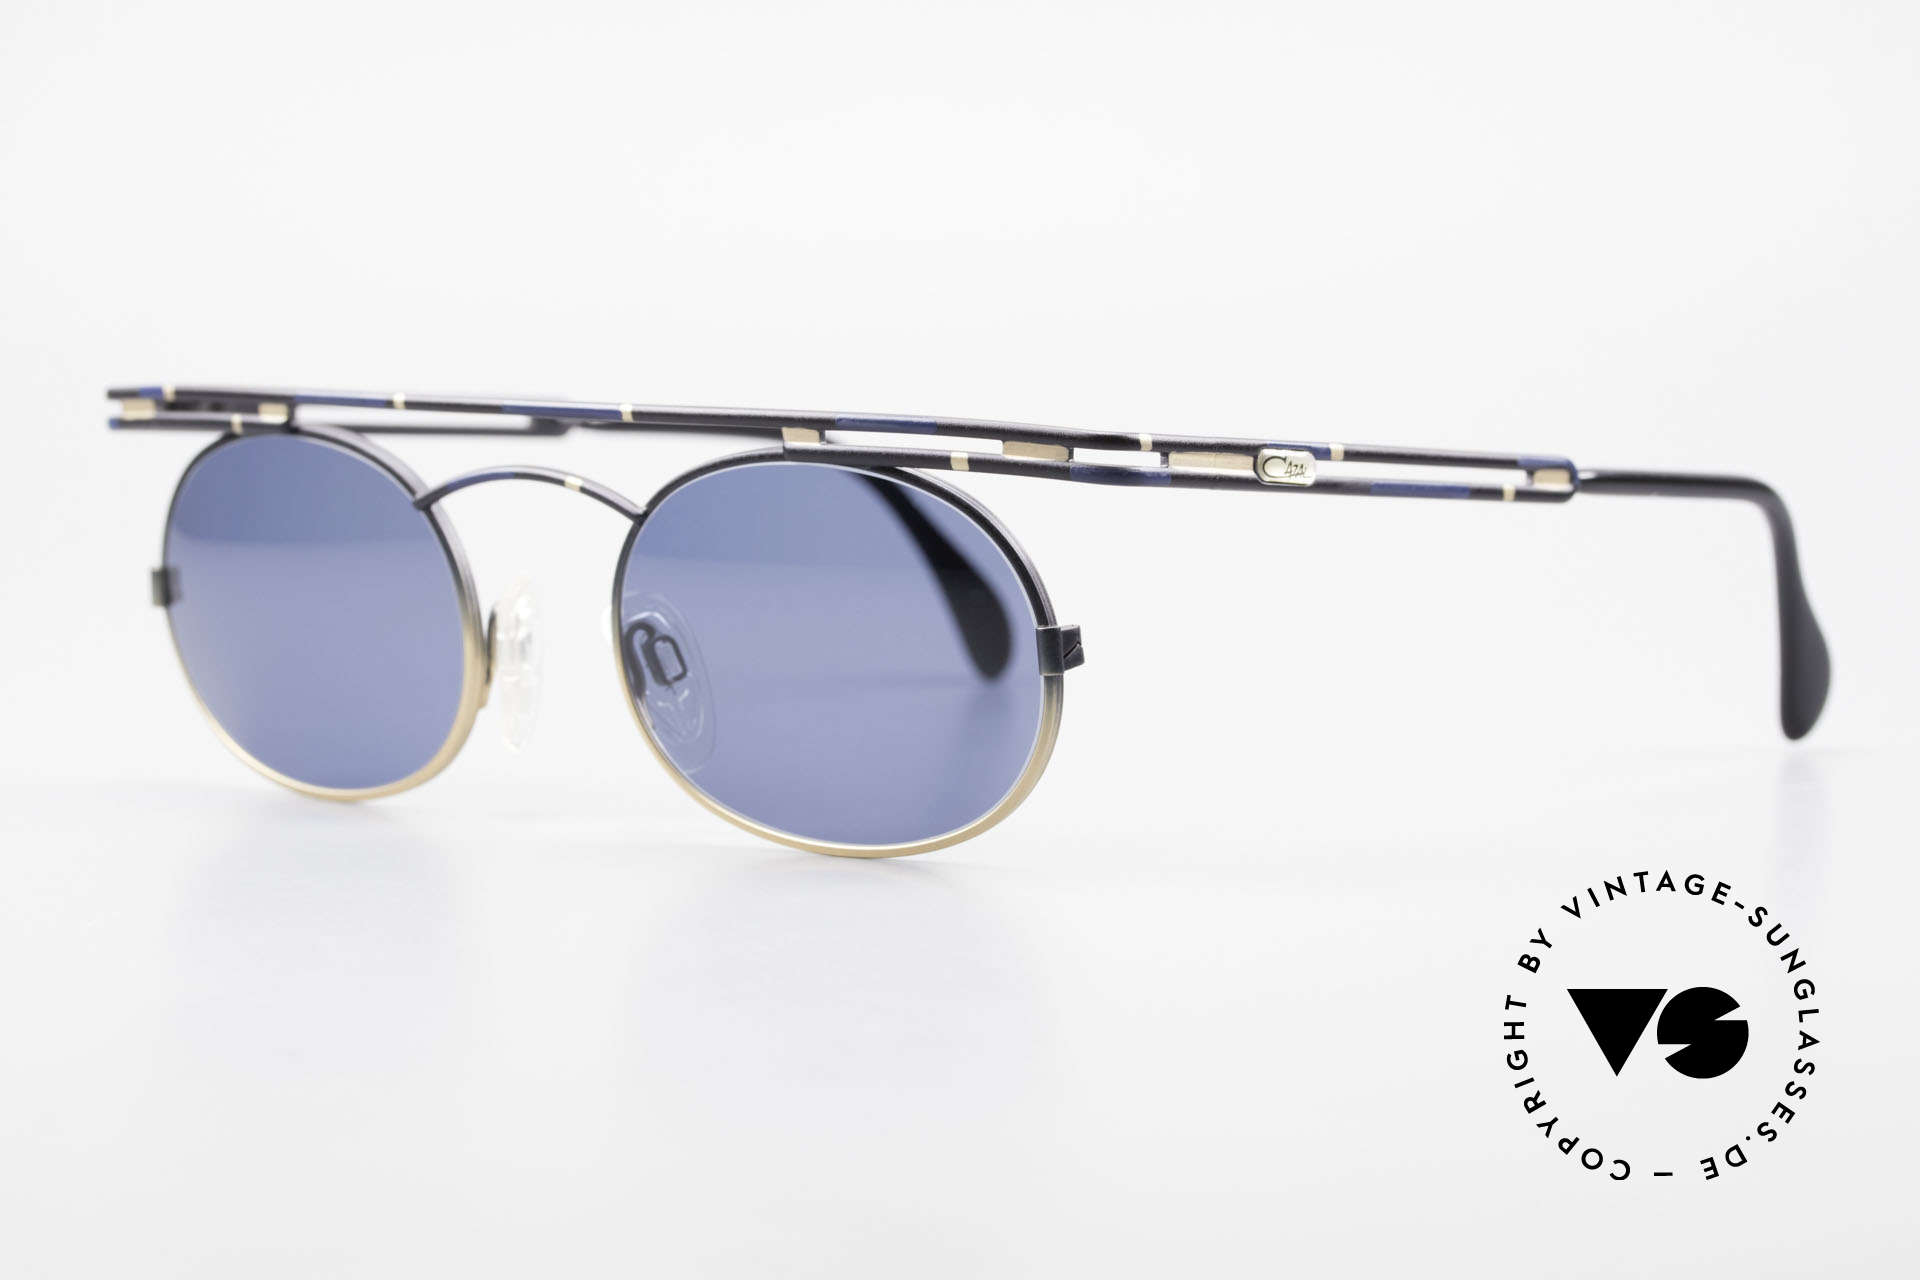 Cazal 761 Original Old Cazal Sunglasses, top-notch craftsmanship (frame 'made in Germany'), Made for Men and Women